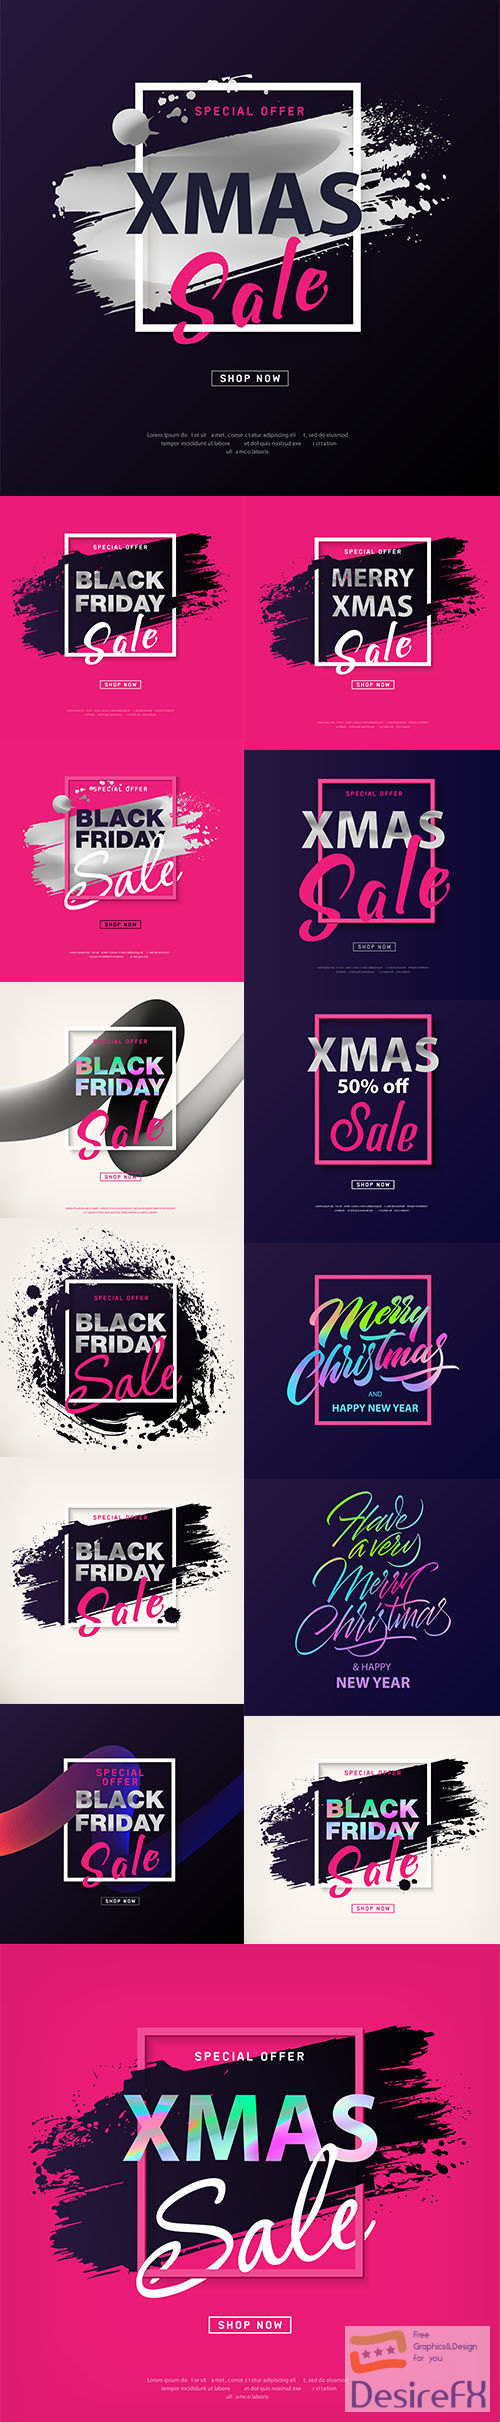 Merry christmas sale poster and black friday sale poster with silver text